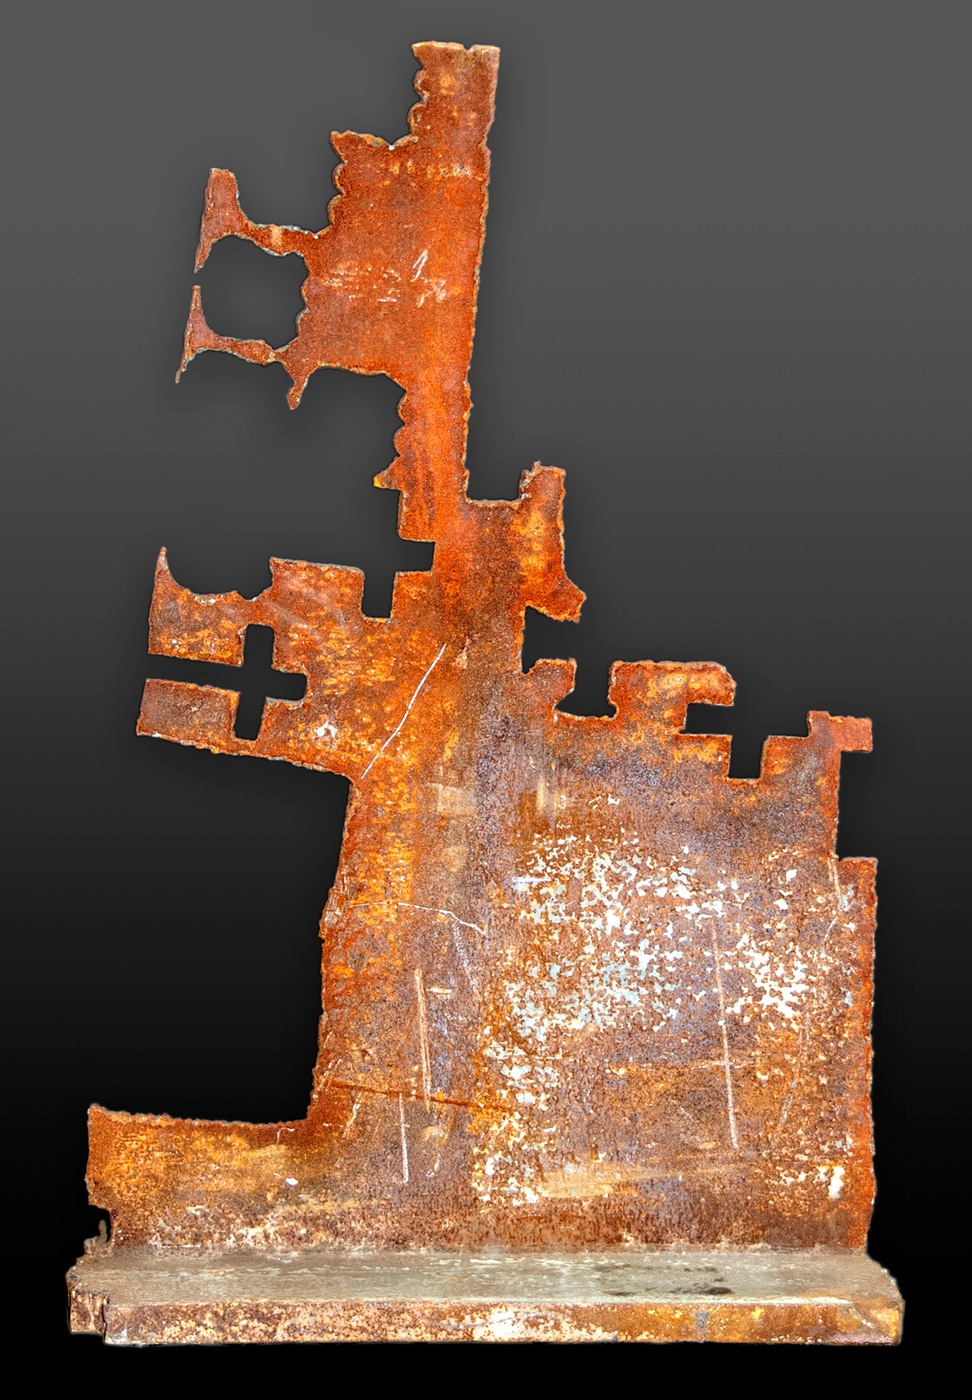 Photo of a piece of steel found in the aftermath of the Sept. 11, 2001 attack on the World Trade Center.